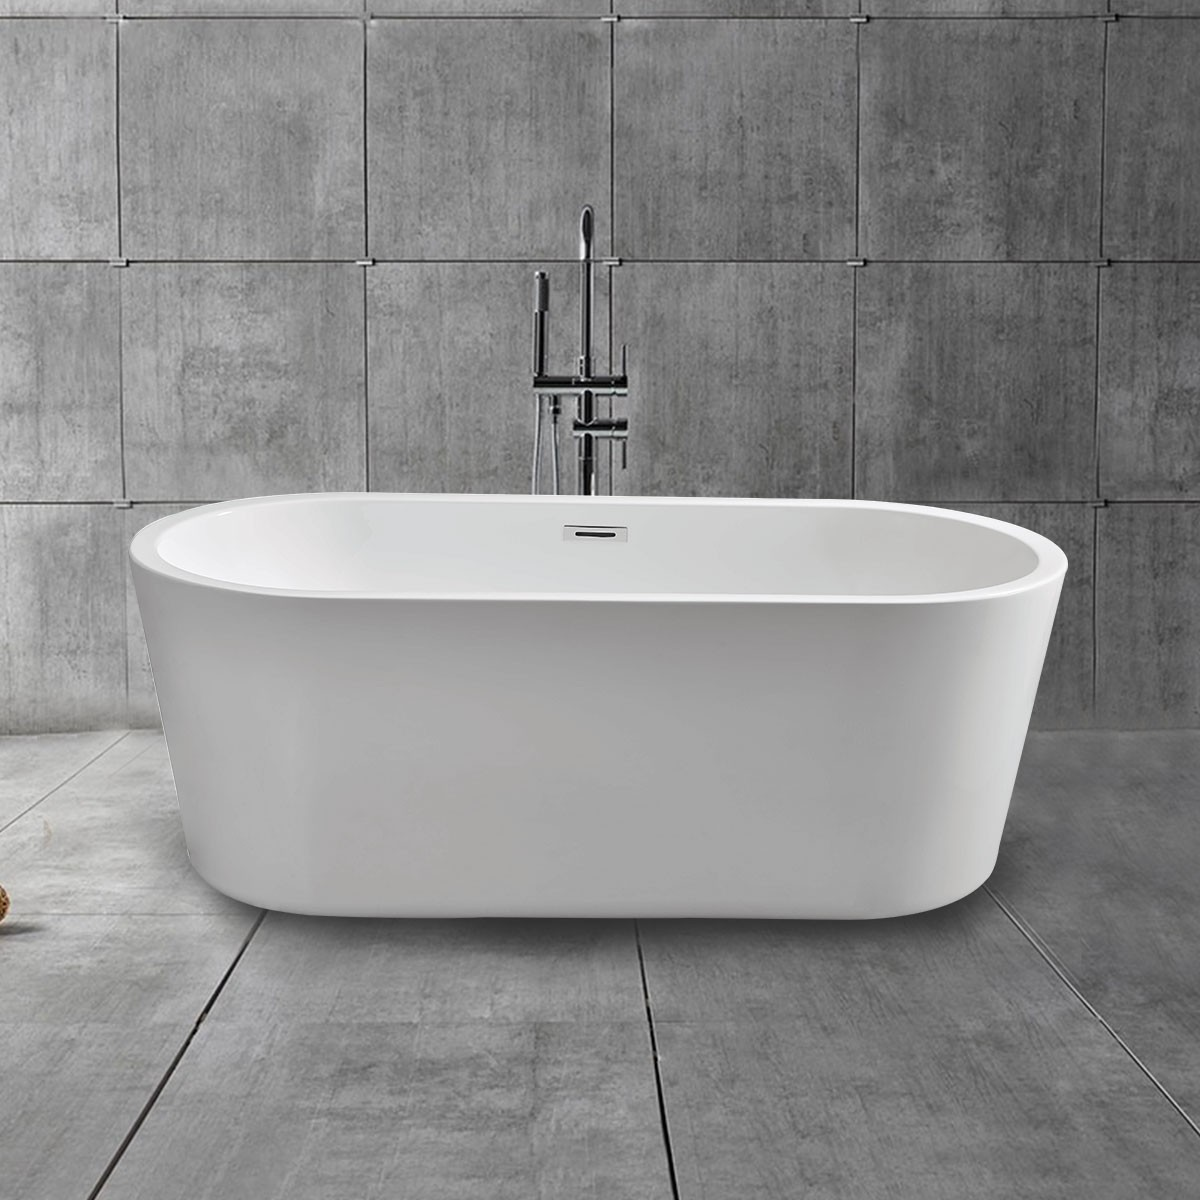 67 In Freestanding Bathtub - Acrylic White (DK-MEC3004B)